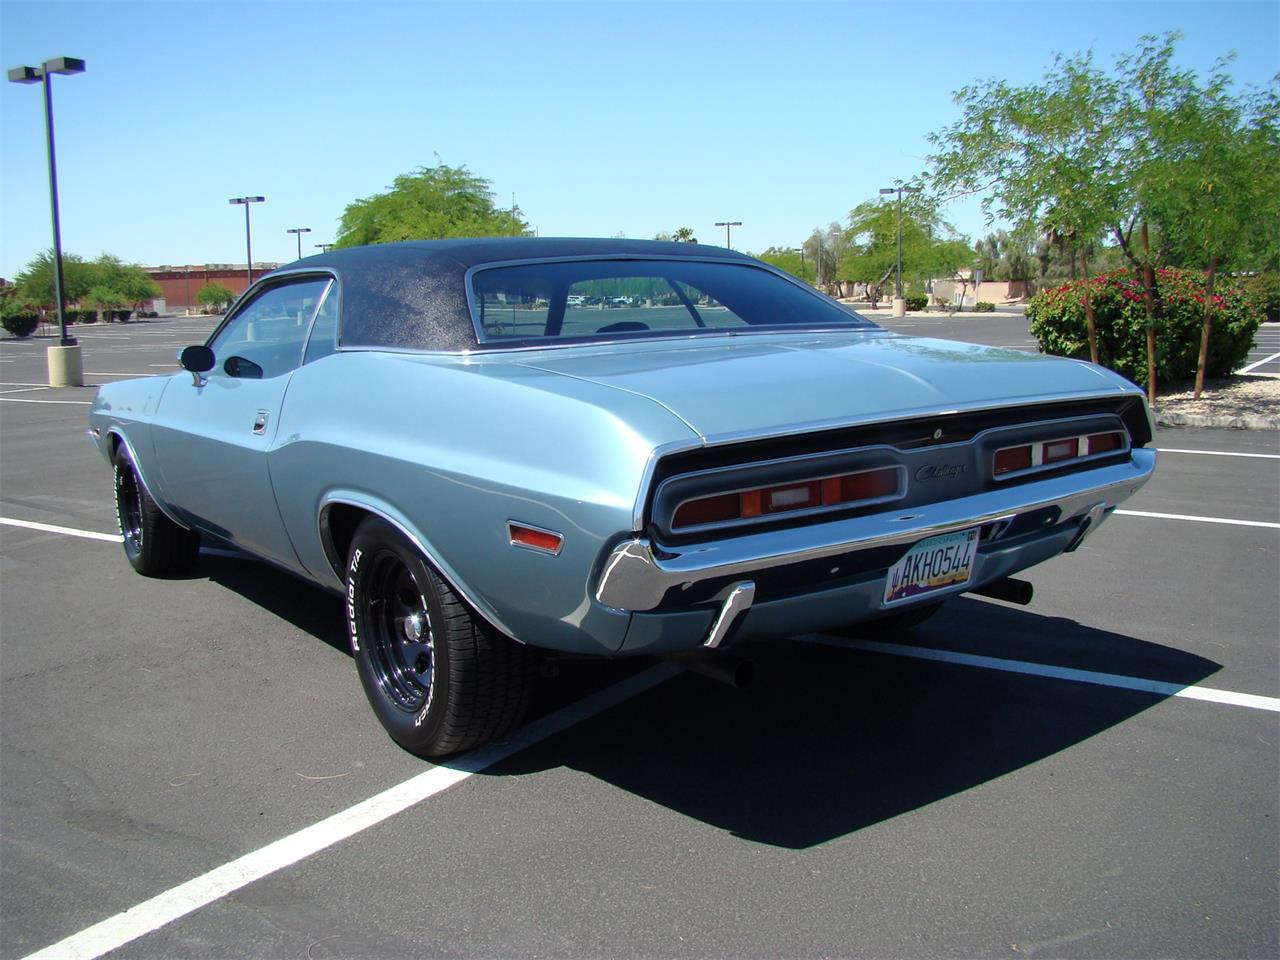 Large Picture of 1970 Dodge Challenger located in Arizona - $20,000.00 Offered by a Private Seller - M4T9